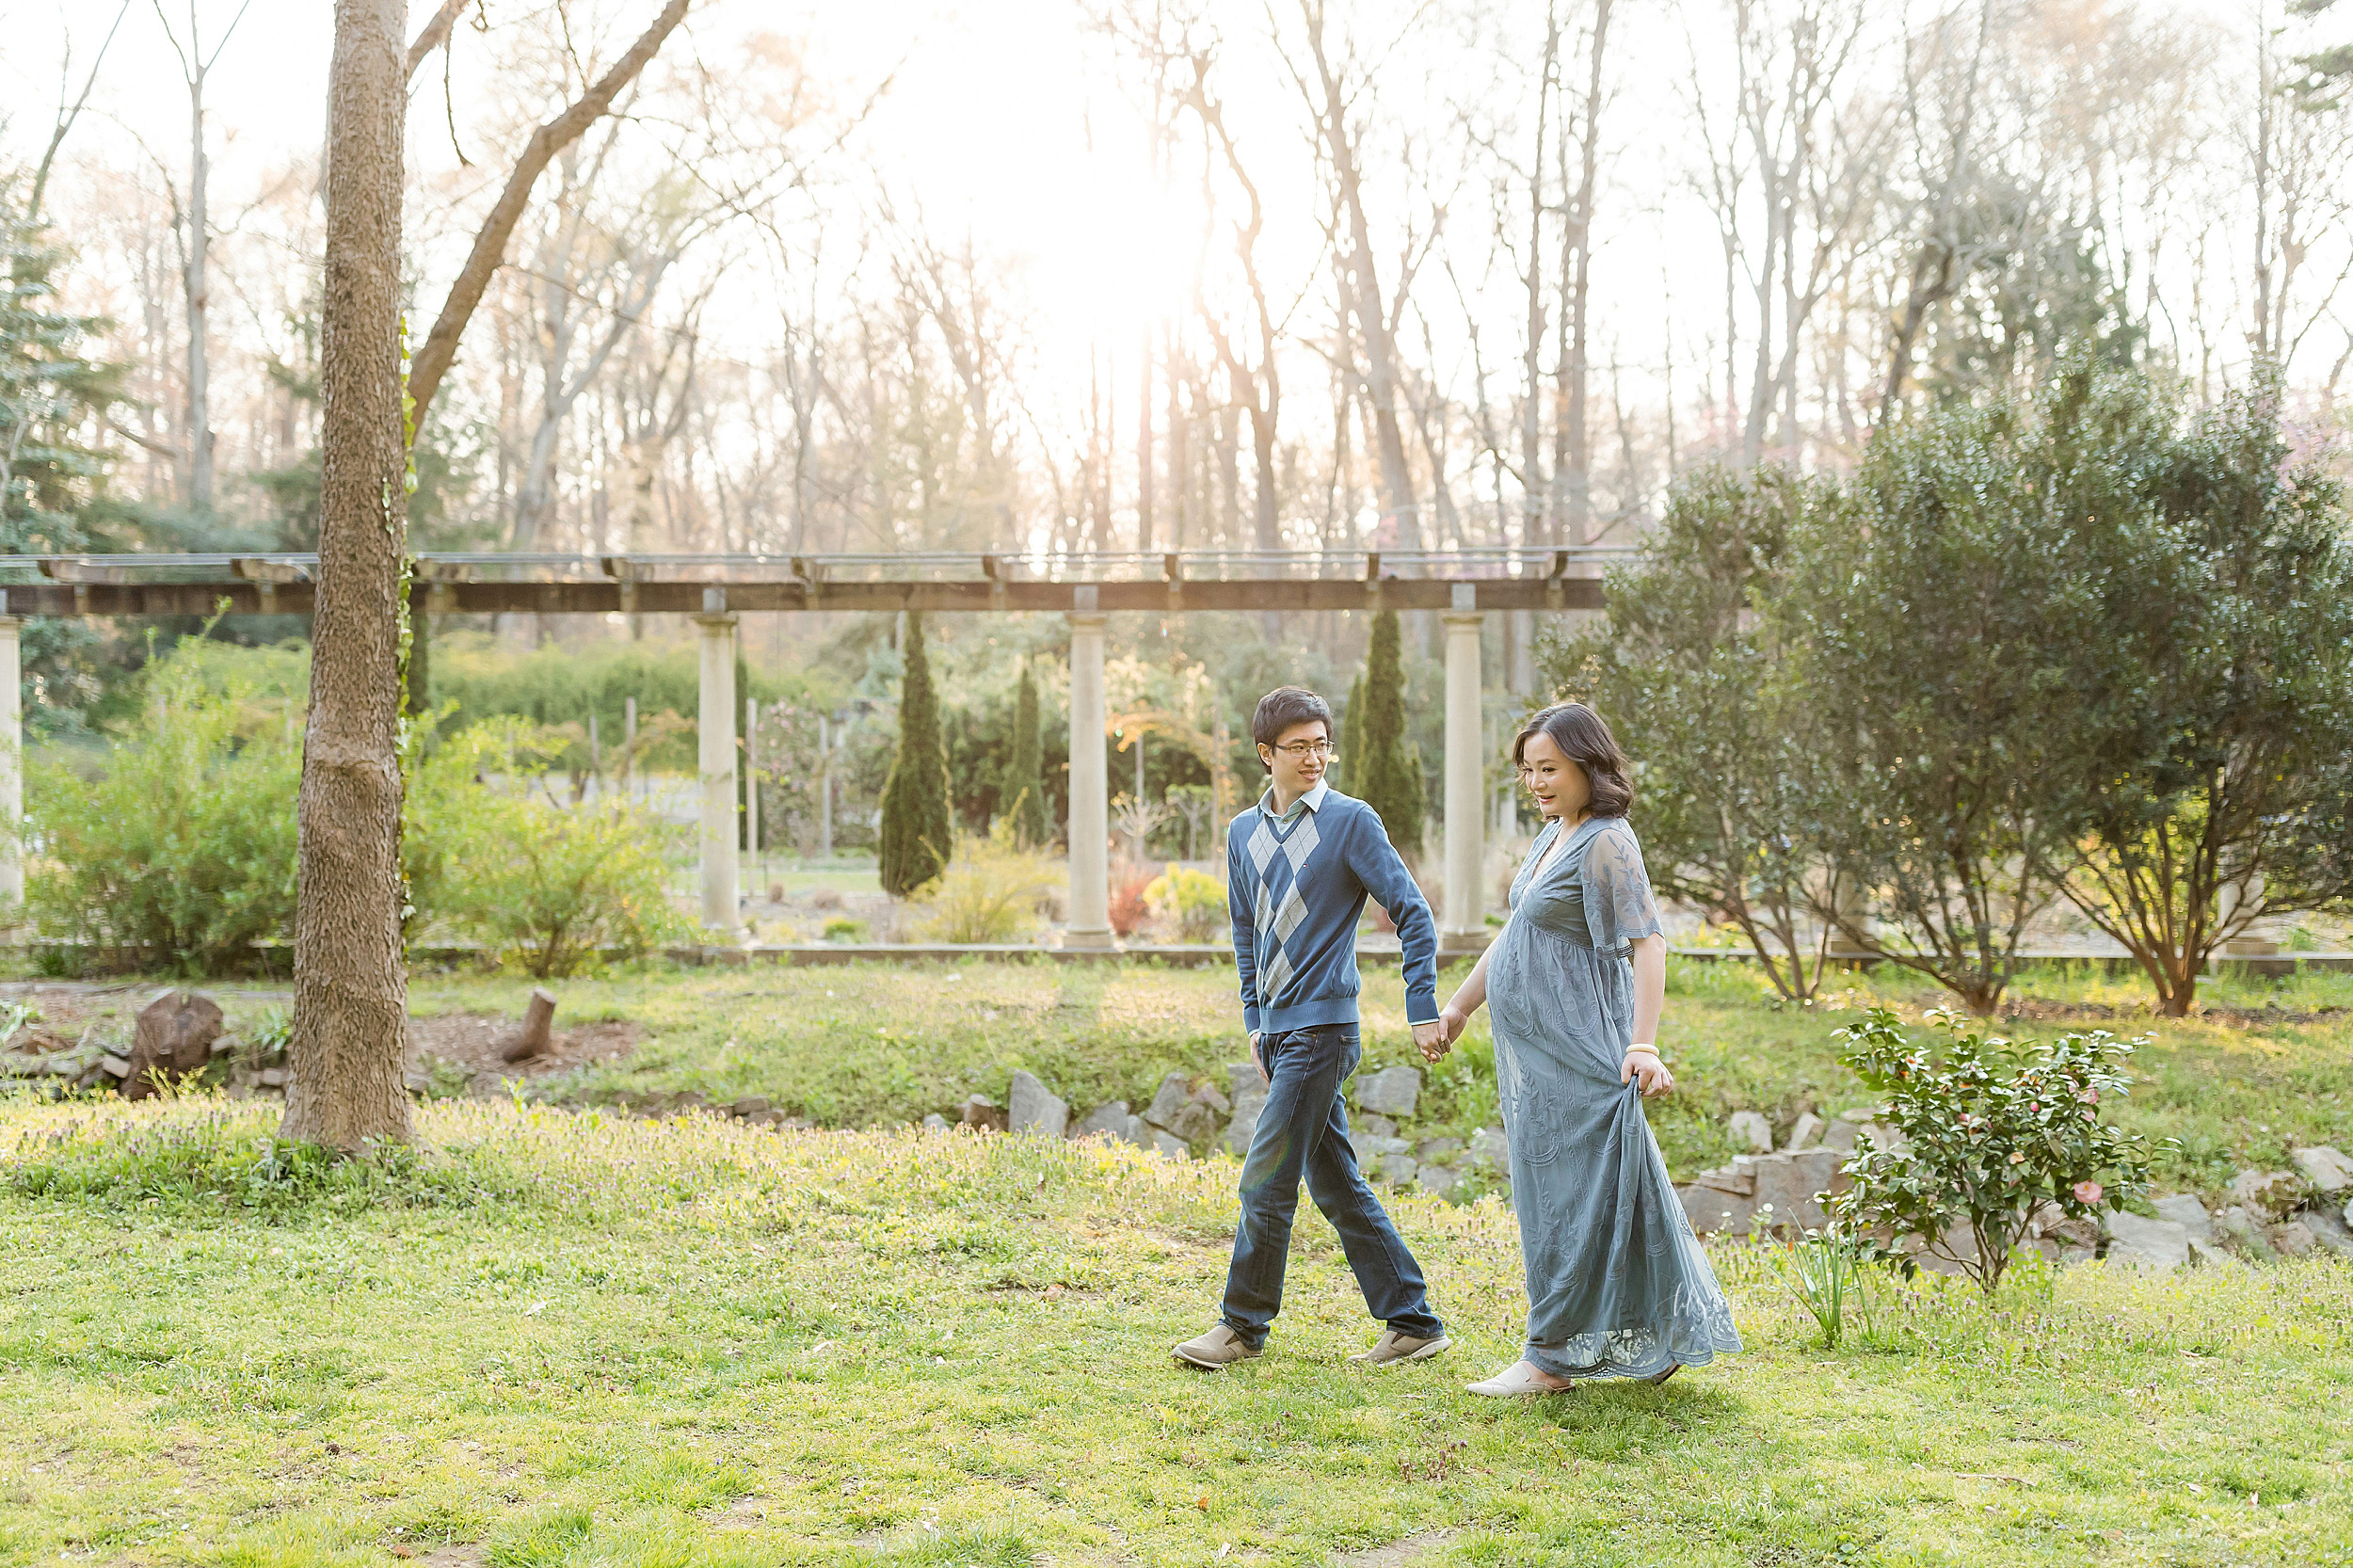 atlanta-druid-hills-decatur-sandy-springs-buckhead-virginia-highlands-west-end-decatur-lily-sophia-photography-outdoor-sunset-gardens-maternity-expecting-baby-boy_1307.jpg